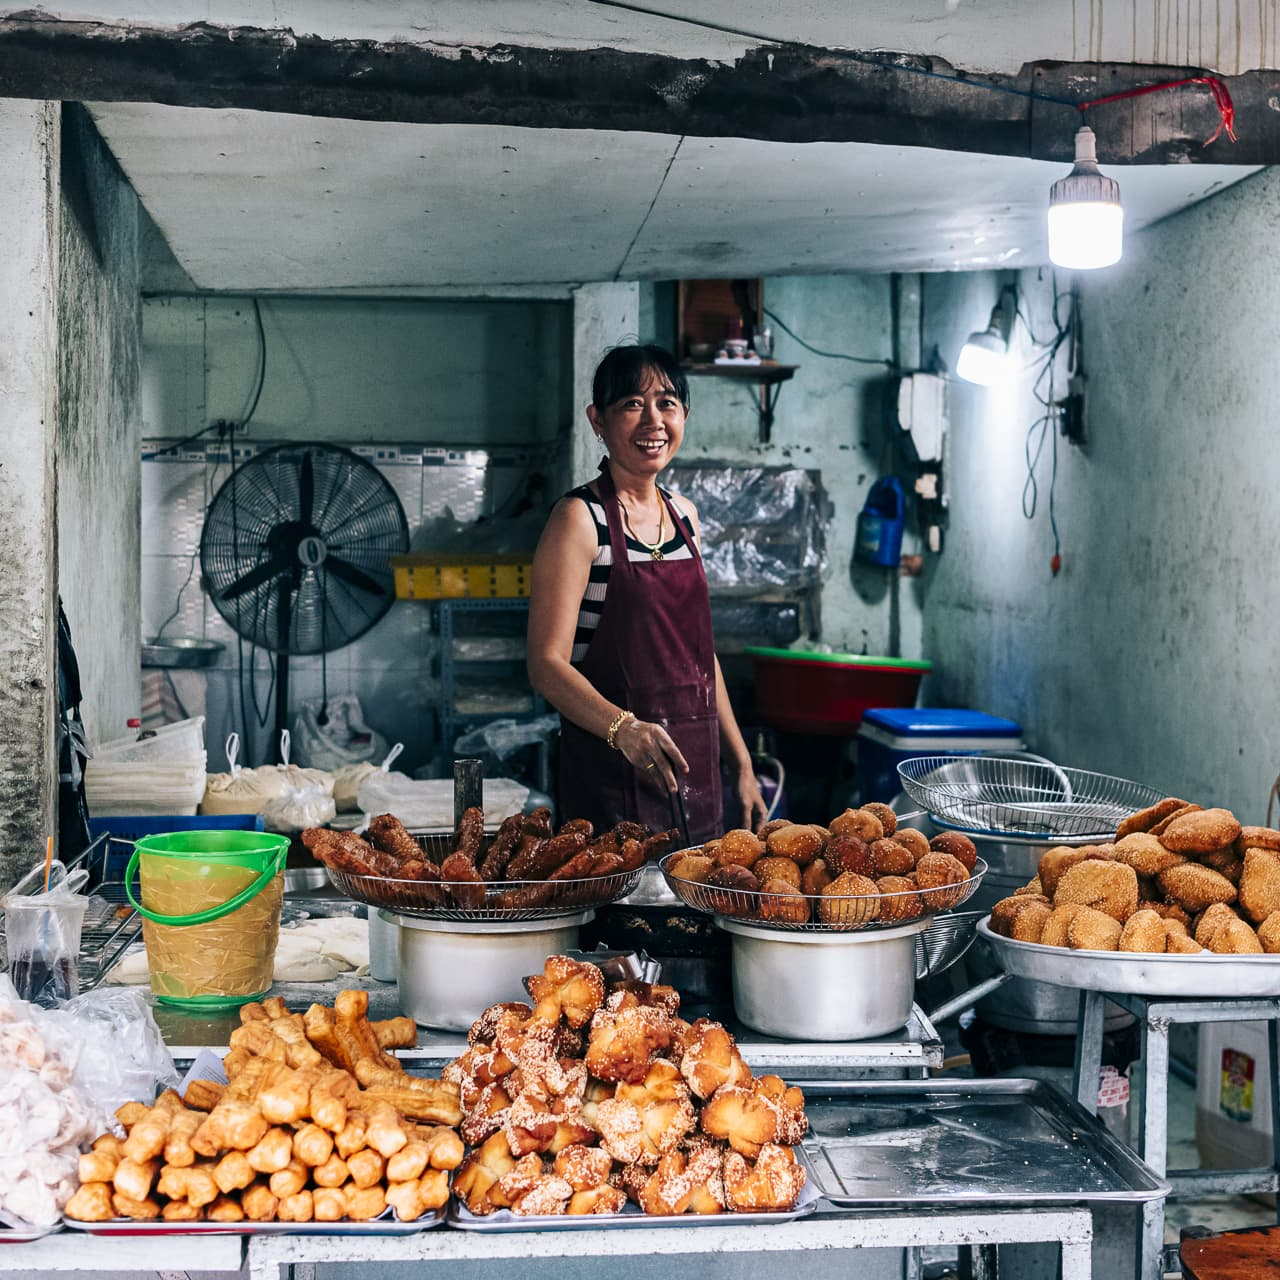 A shop selling all kinds of deep-fried pastries in the morning.